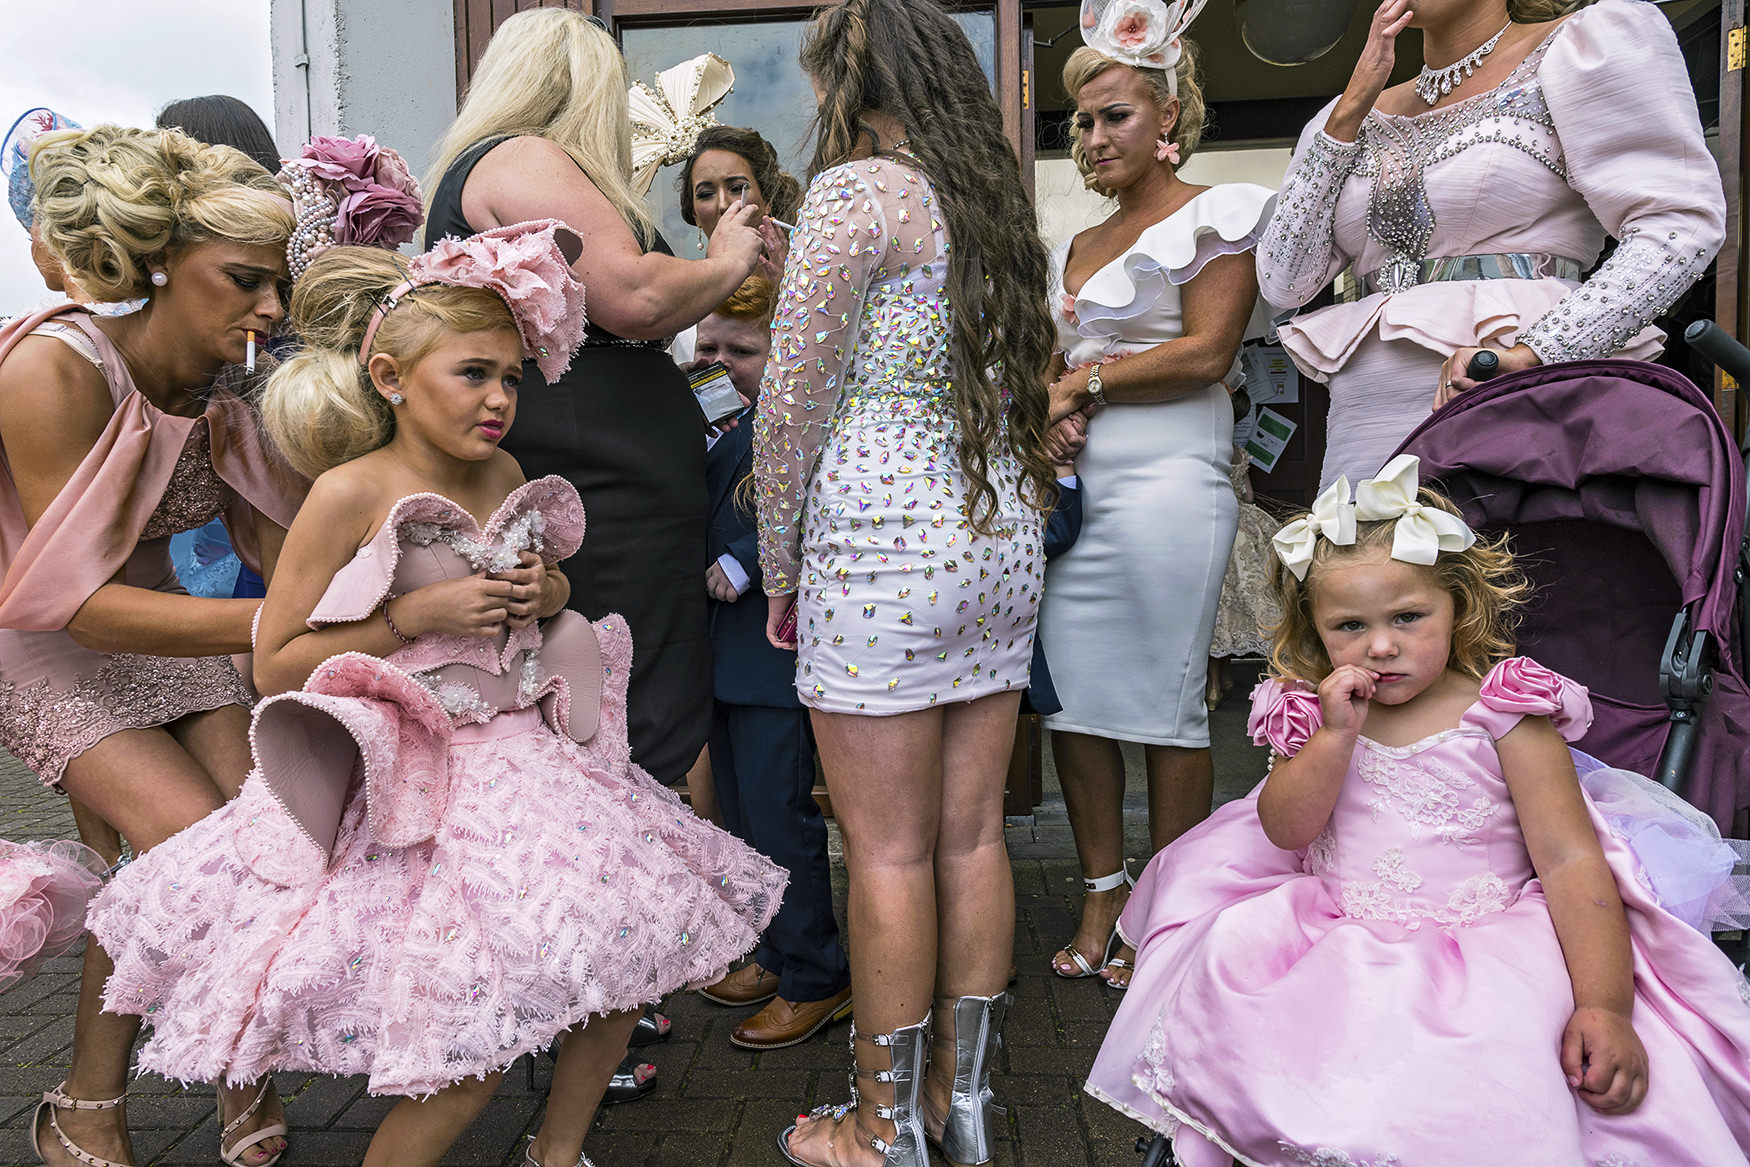 street color photograph of women at a wedding shot in Wexford, Ireland by Joseph-Philippe Bevillard